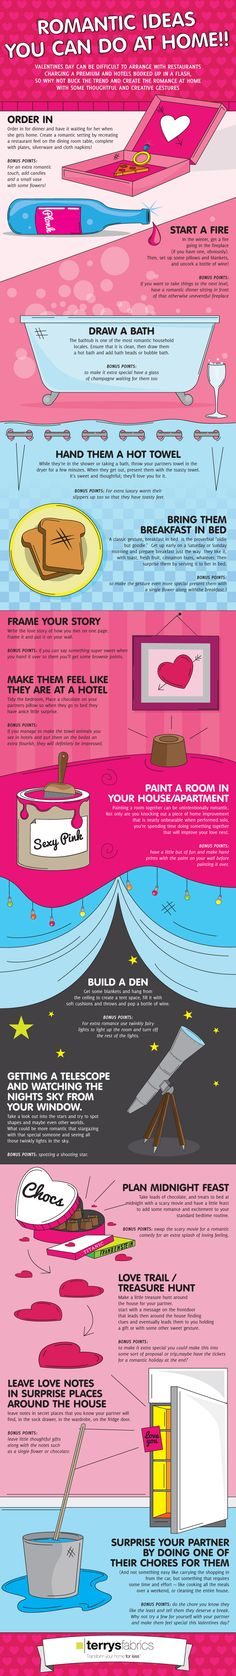 Romantic Ideas You Can Do At Home for Valentine's Day Infographic